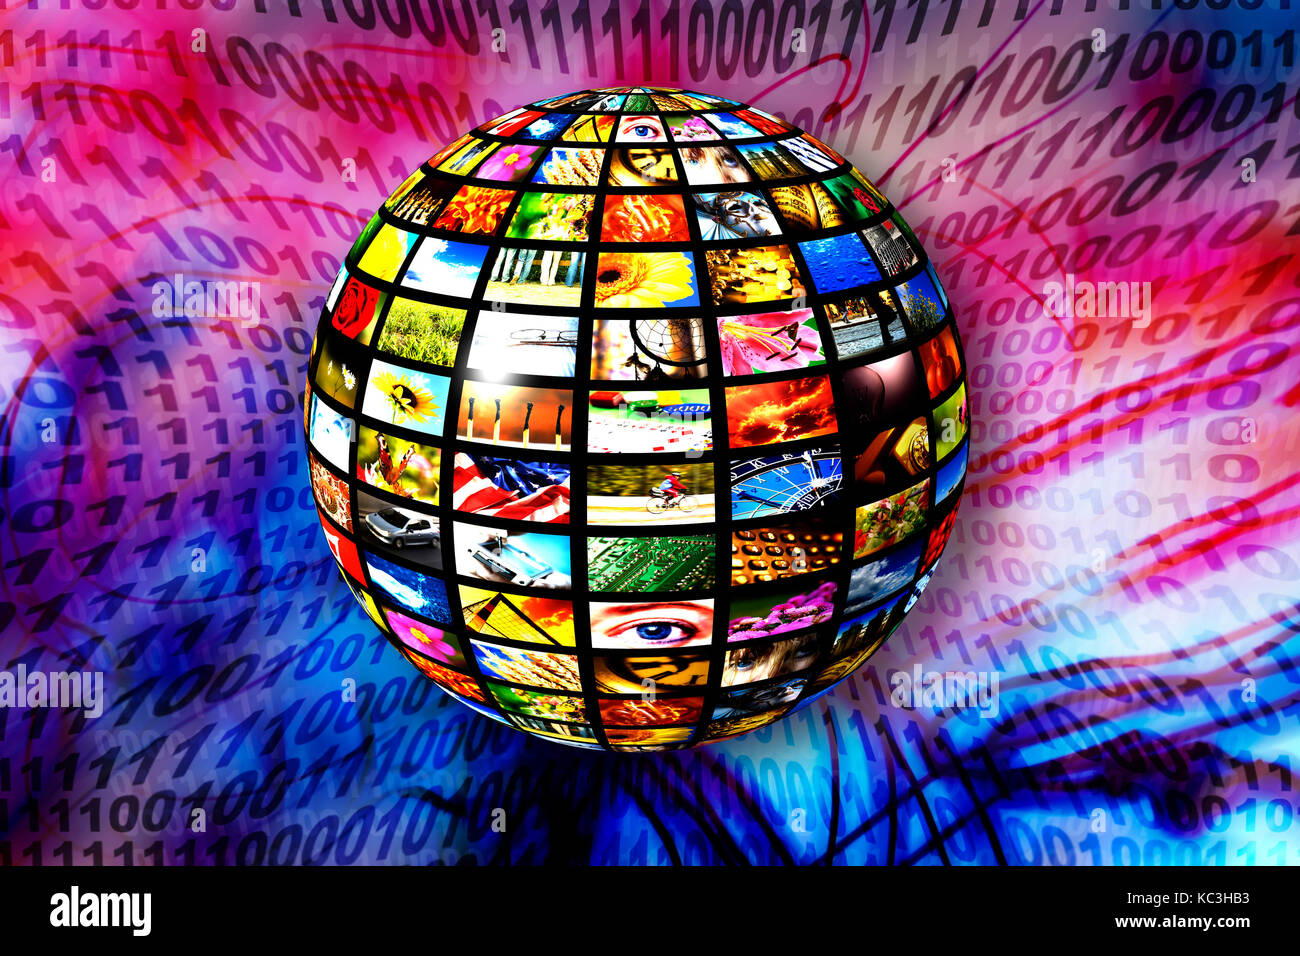 sphere with many screen, digital tv and new media concept - Stock Image